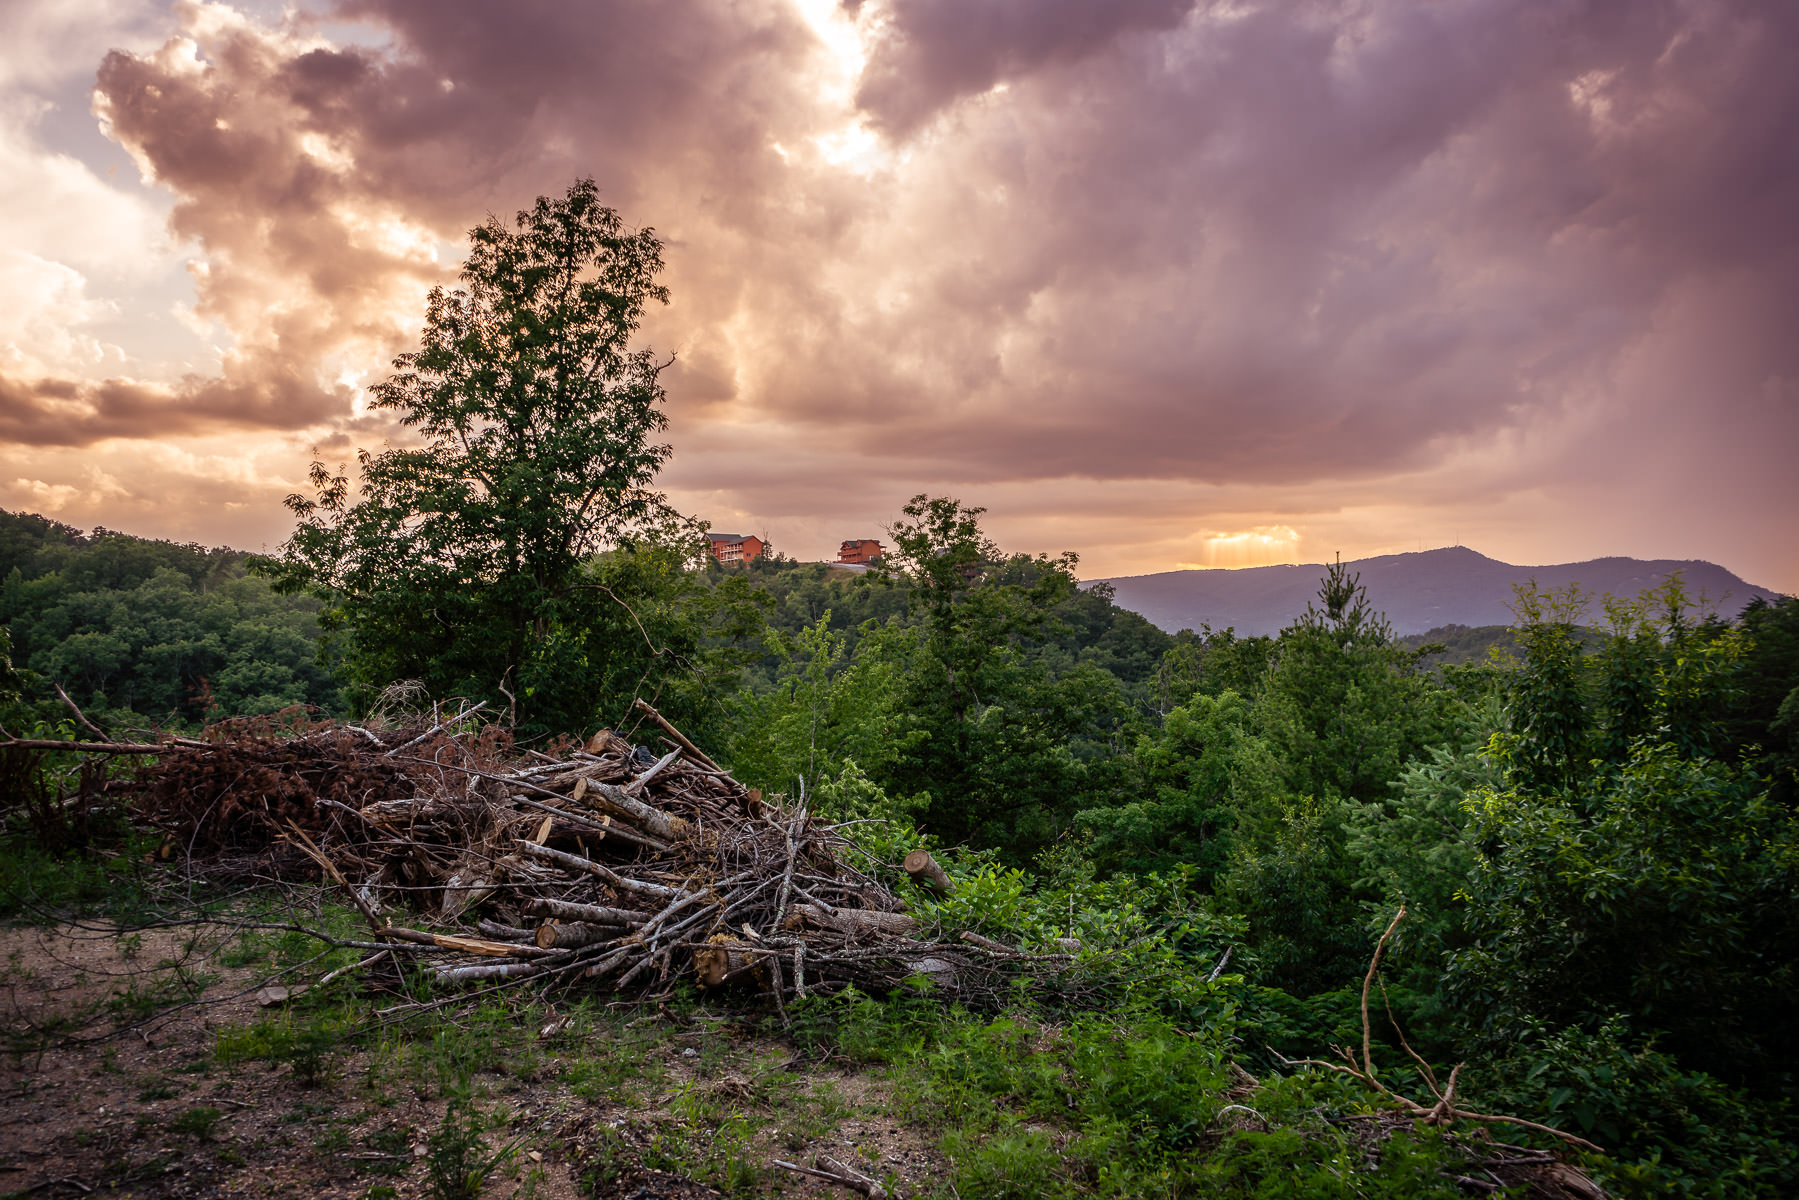 The sun sets on a mountaintop in the Great Smoky Mountains near Pigeon Forge, Tennessee.